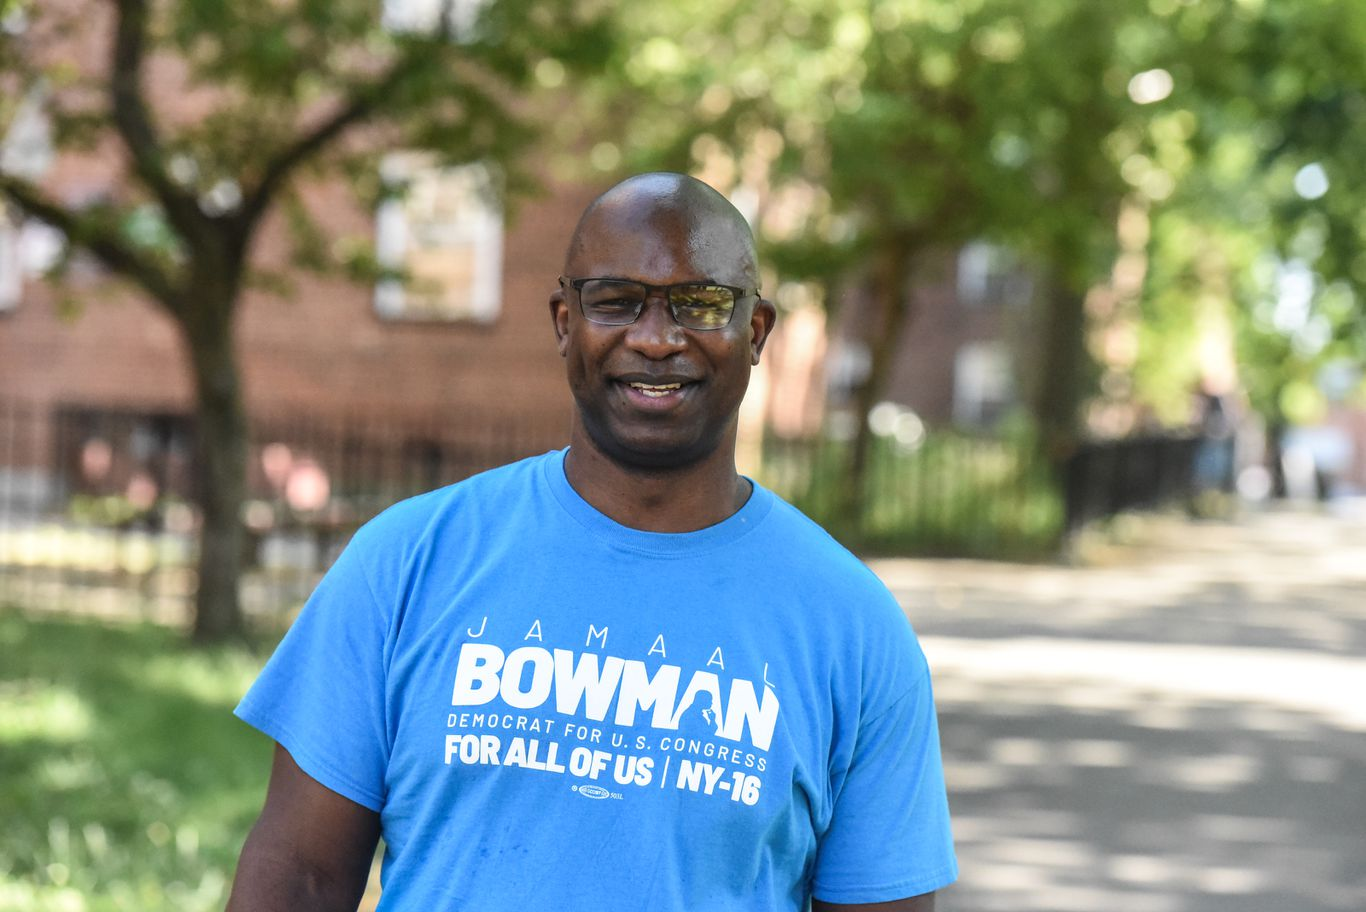 Progressive challenger Jamaal Bowman unseats veteran Rep. Eliot Engel in New York primary thumbnail